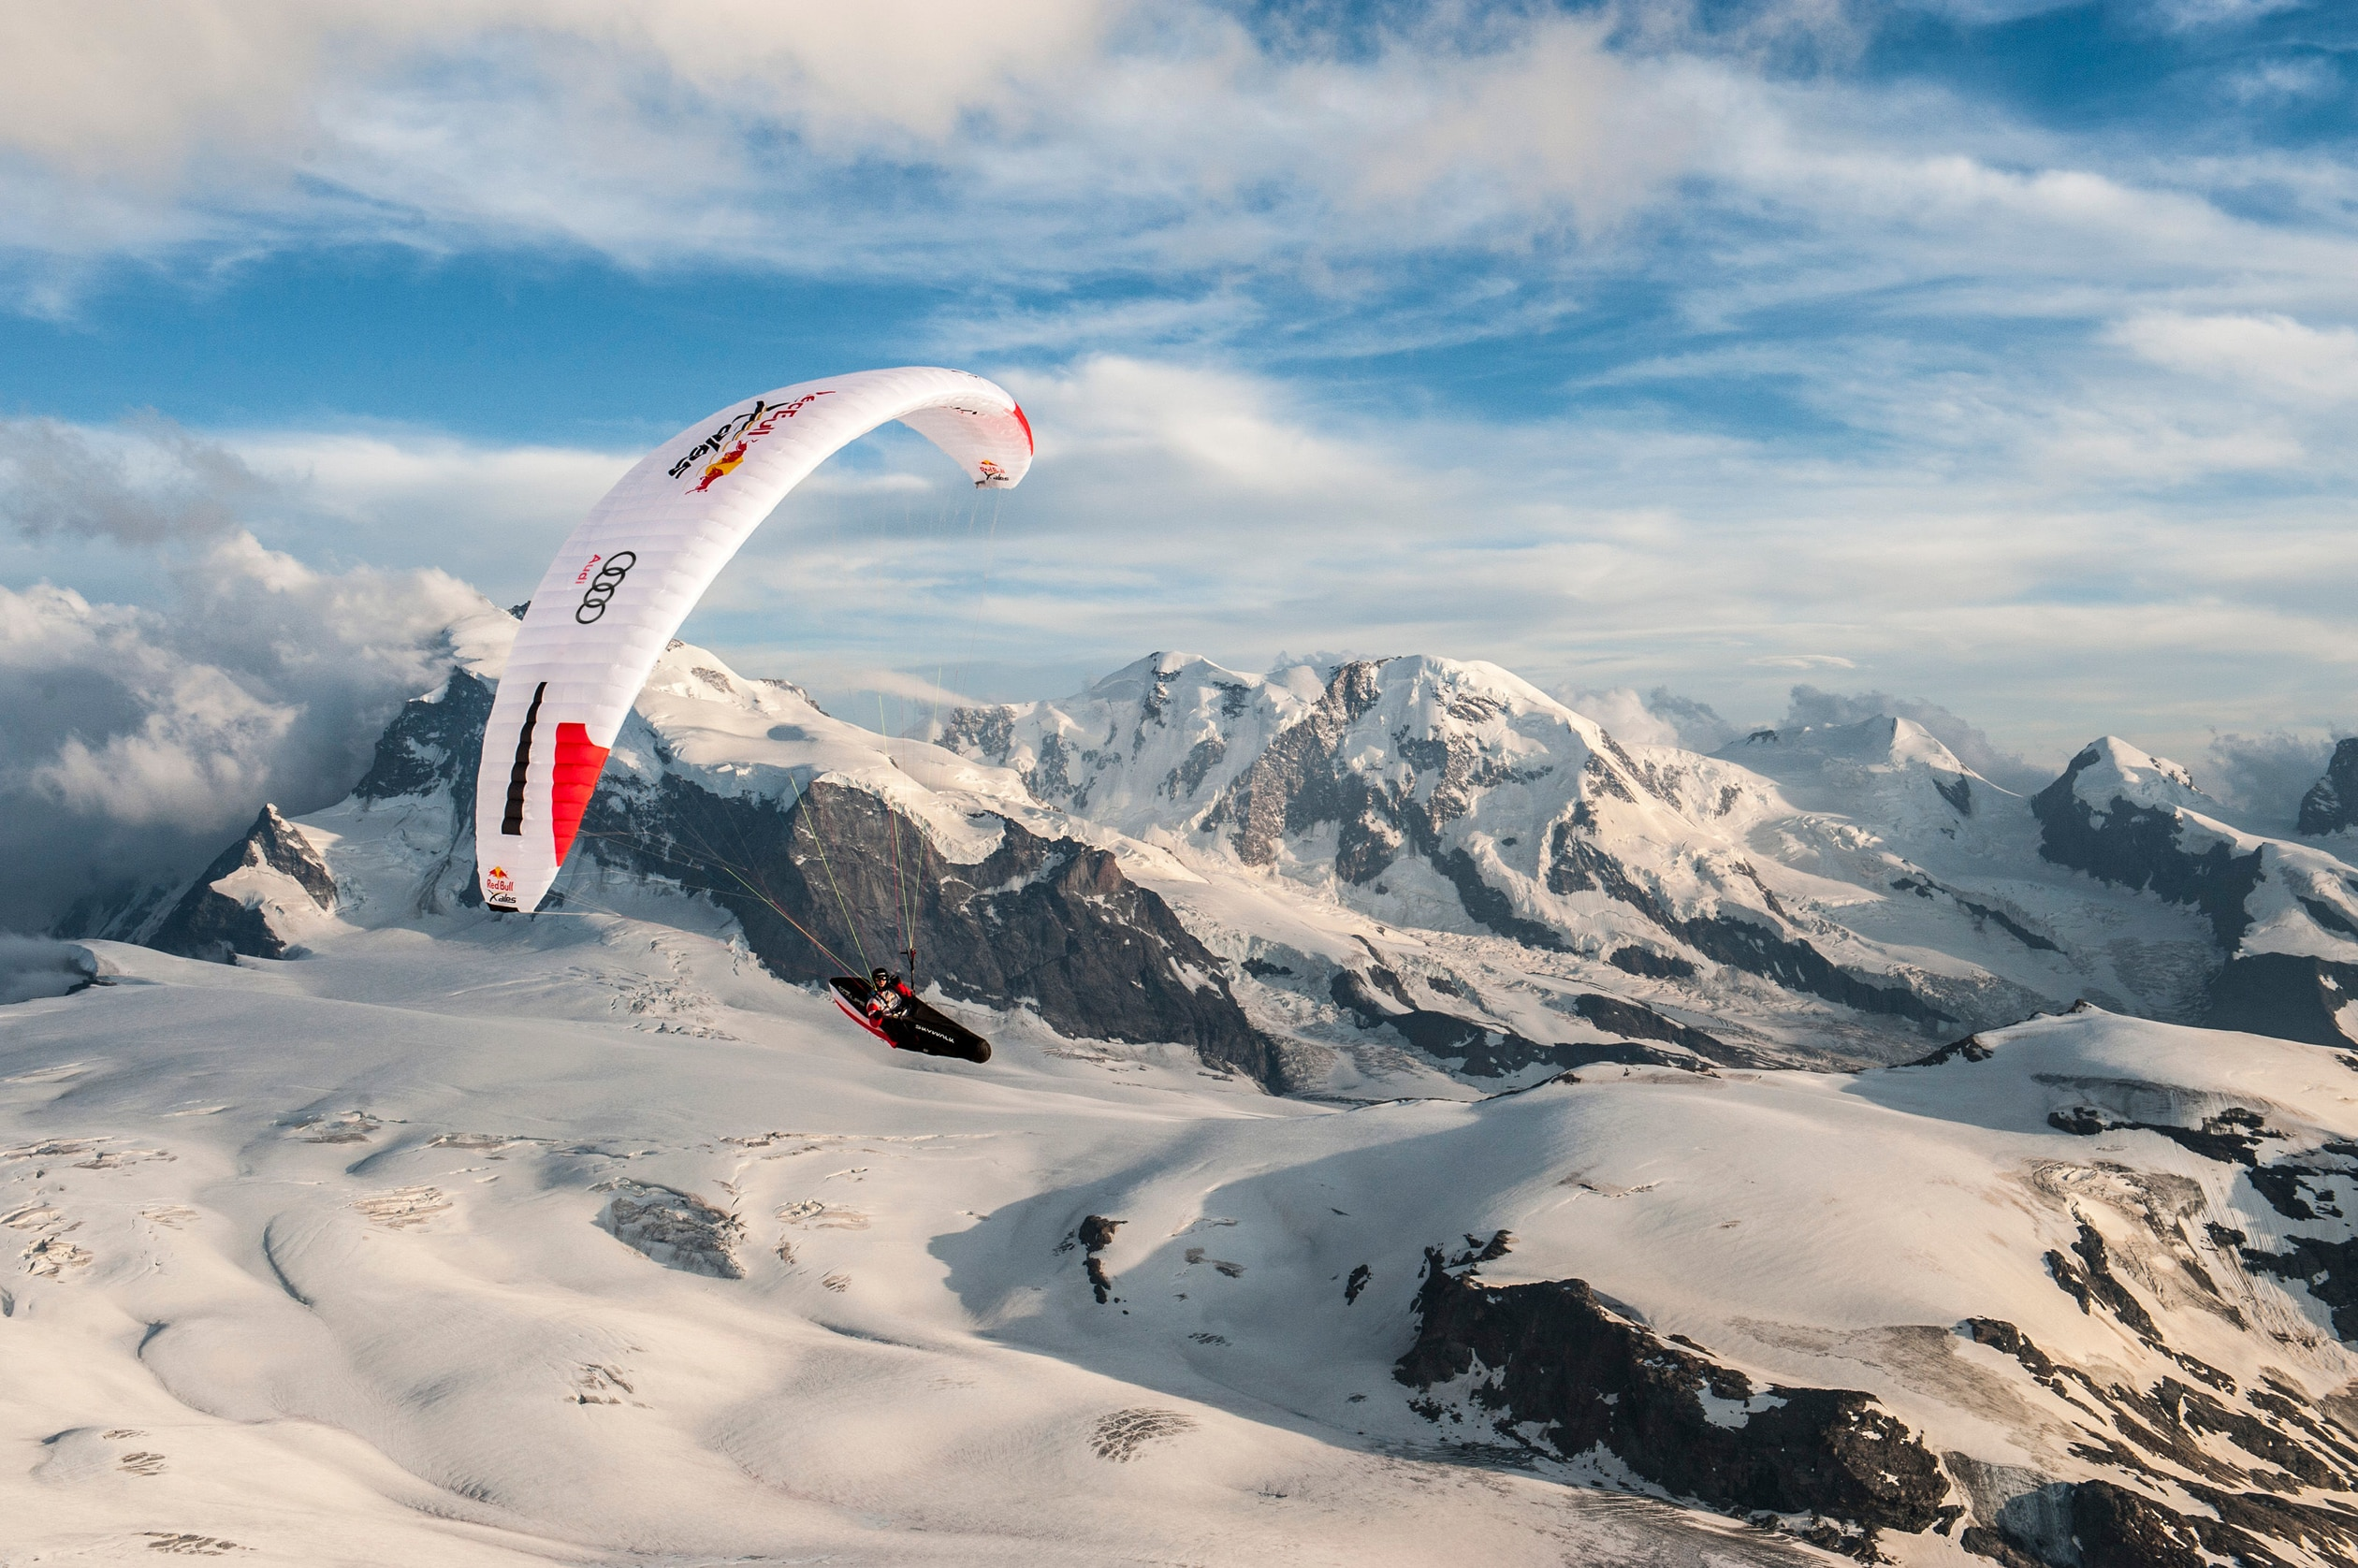 One week to go until Red Bull X-Alps 2019 with advanced 3D